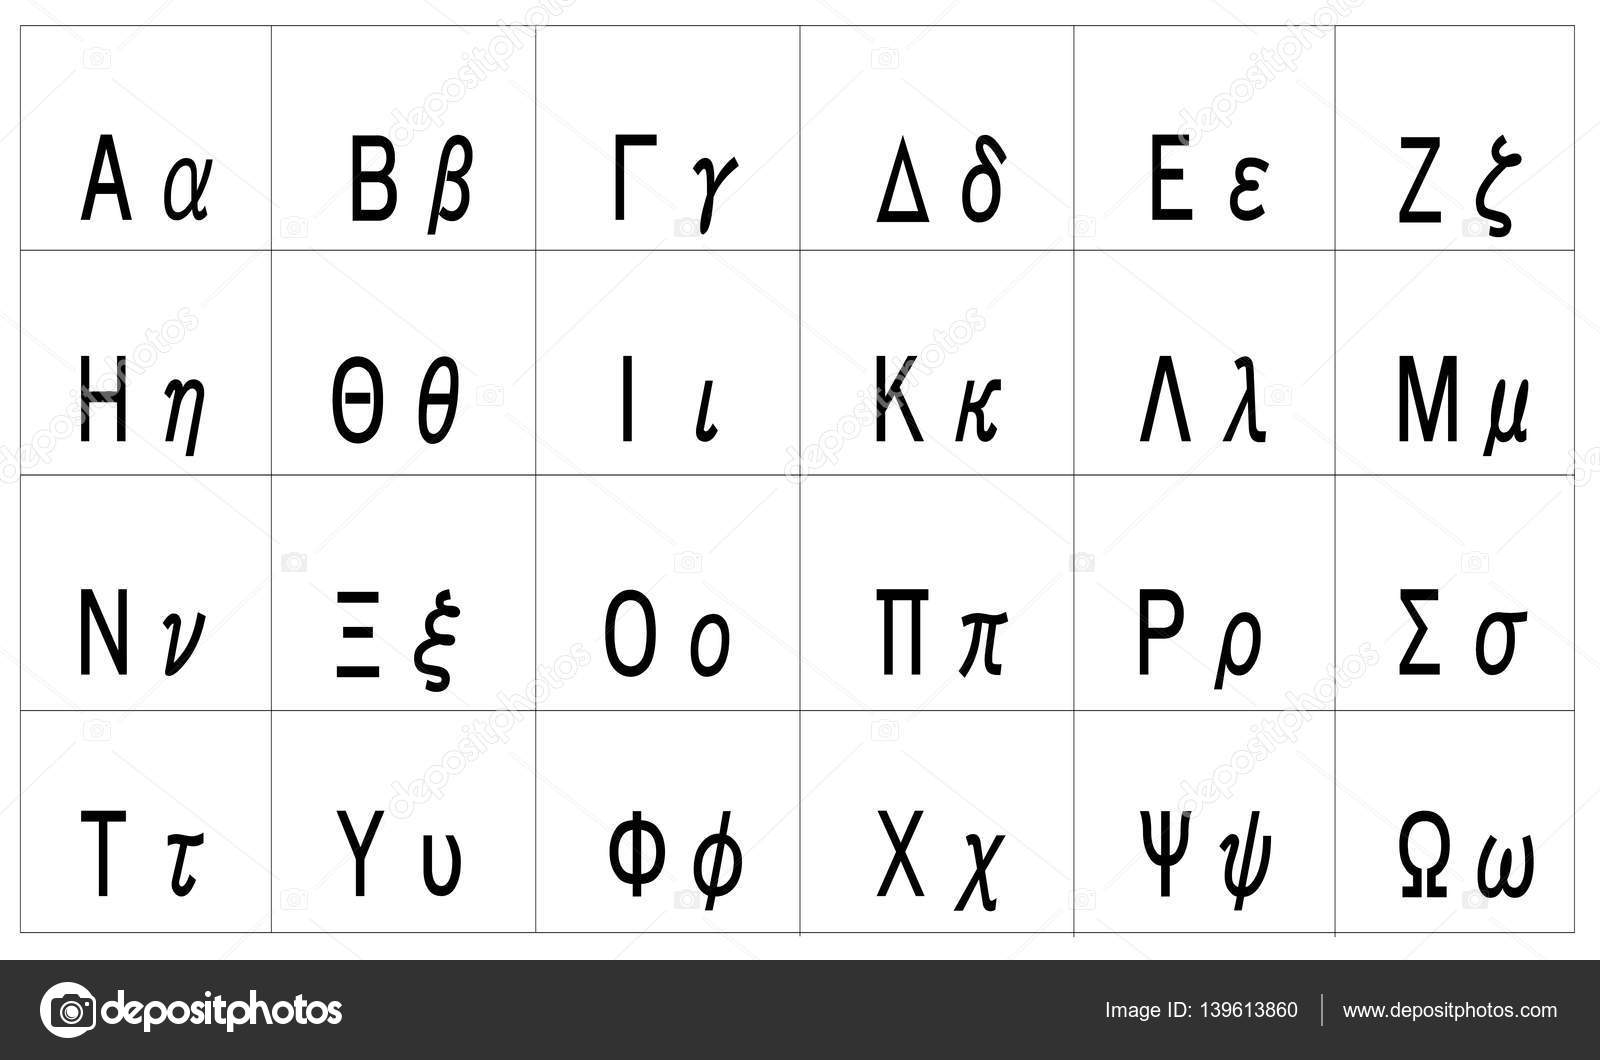 Greek Alphabet In Order From A To Z